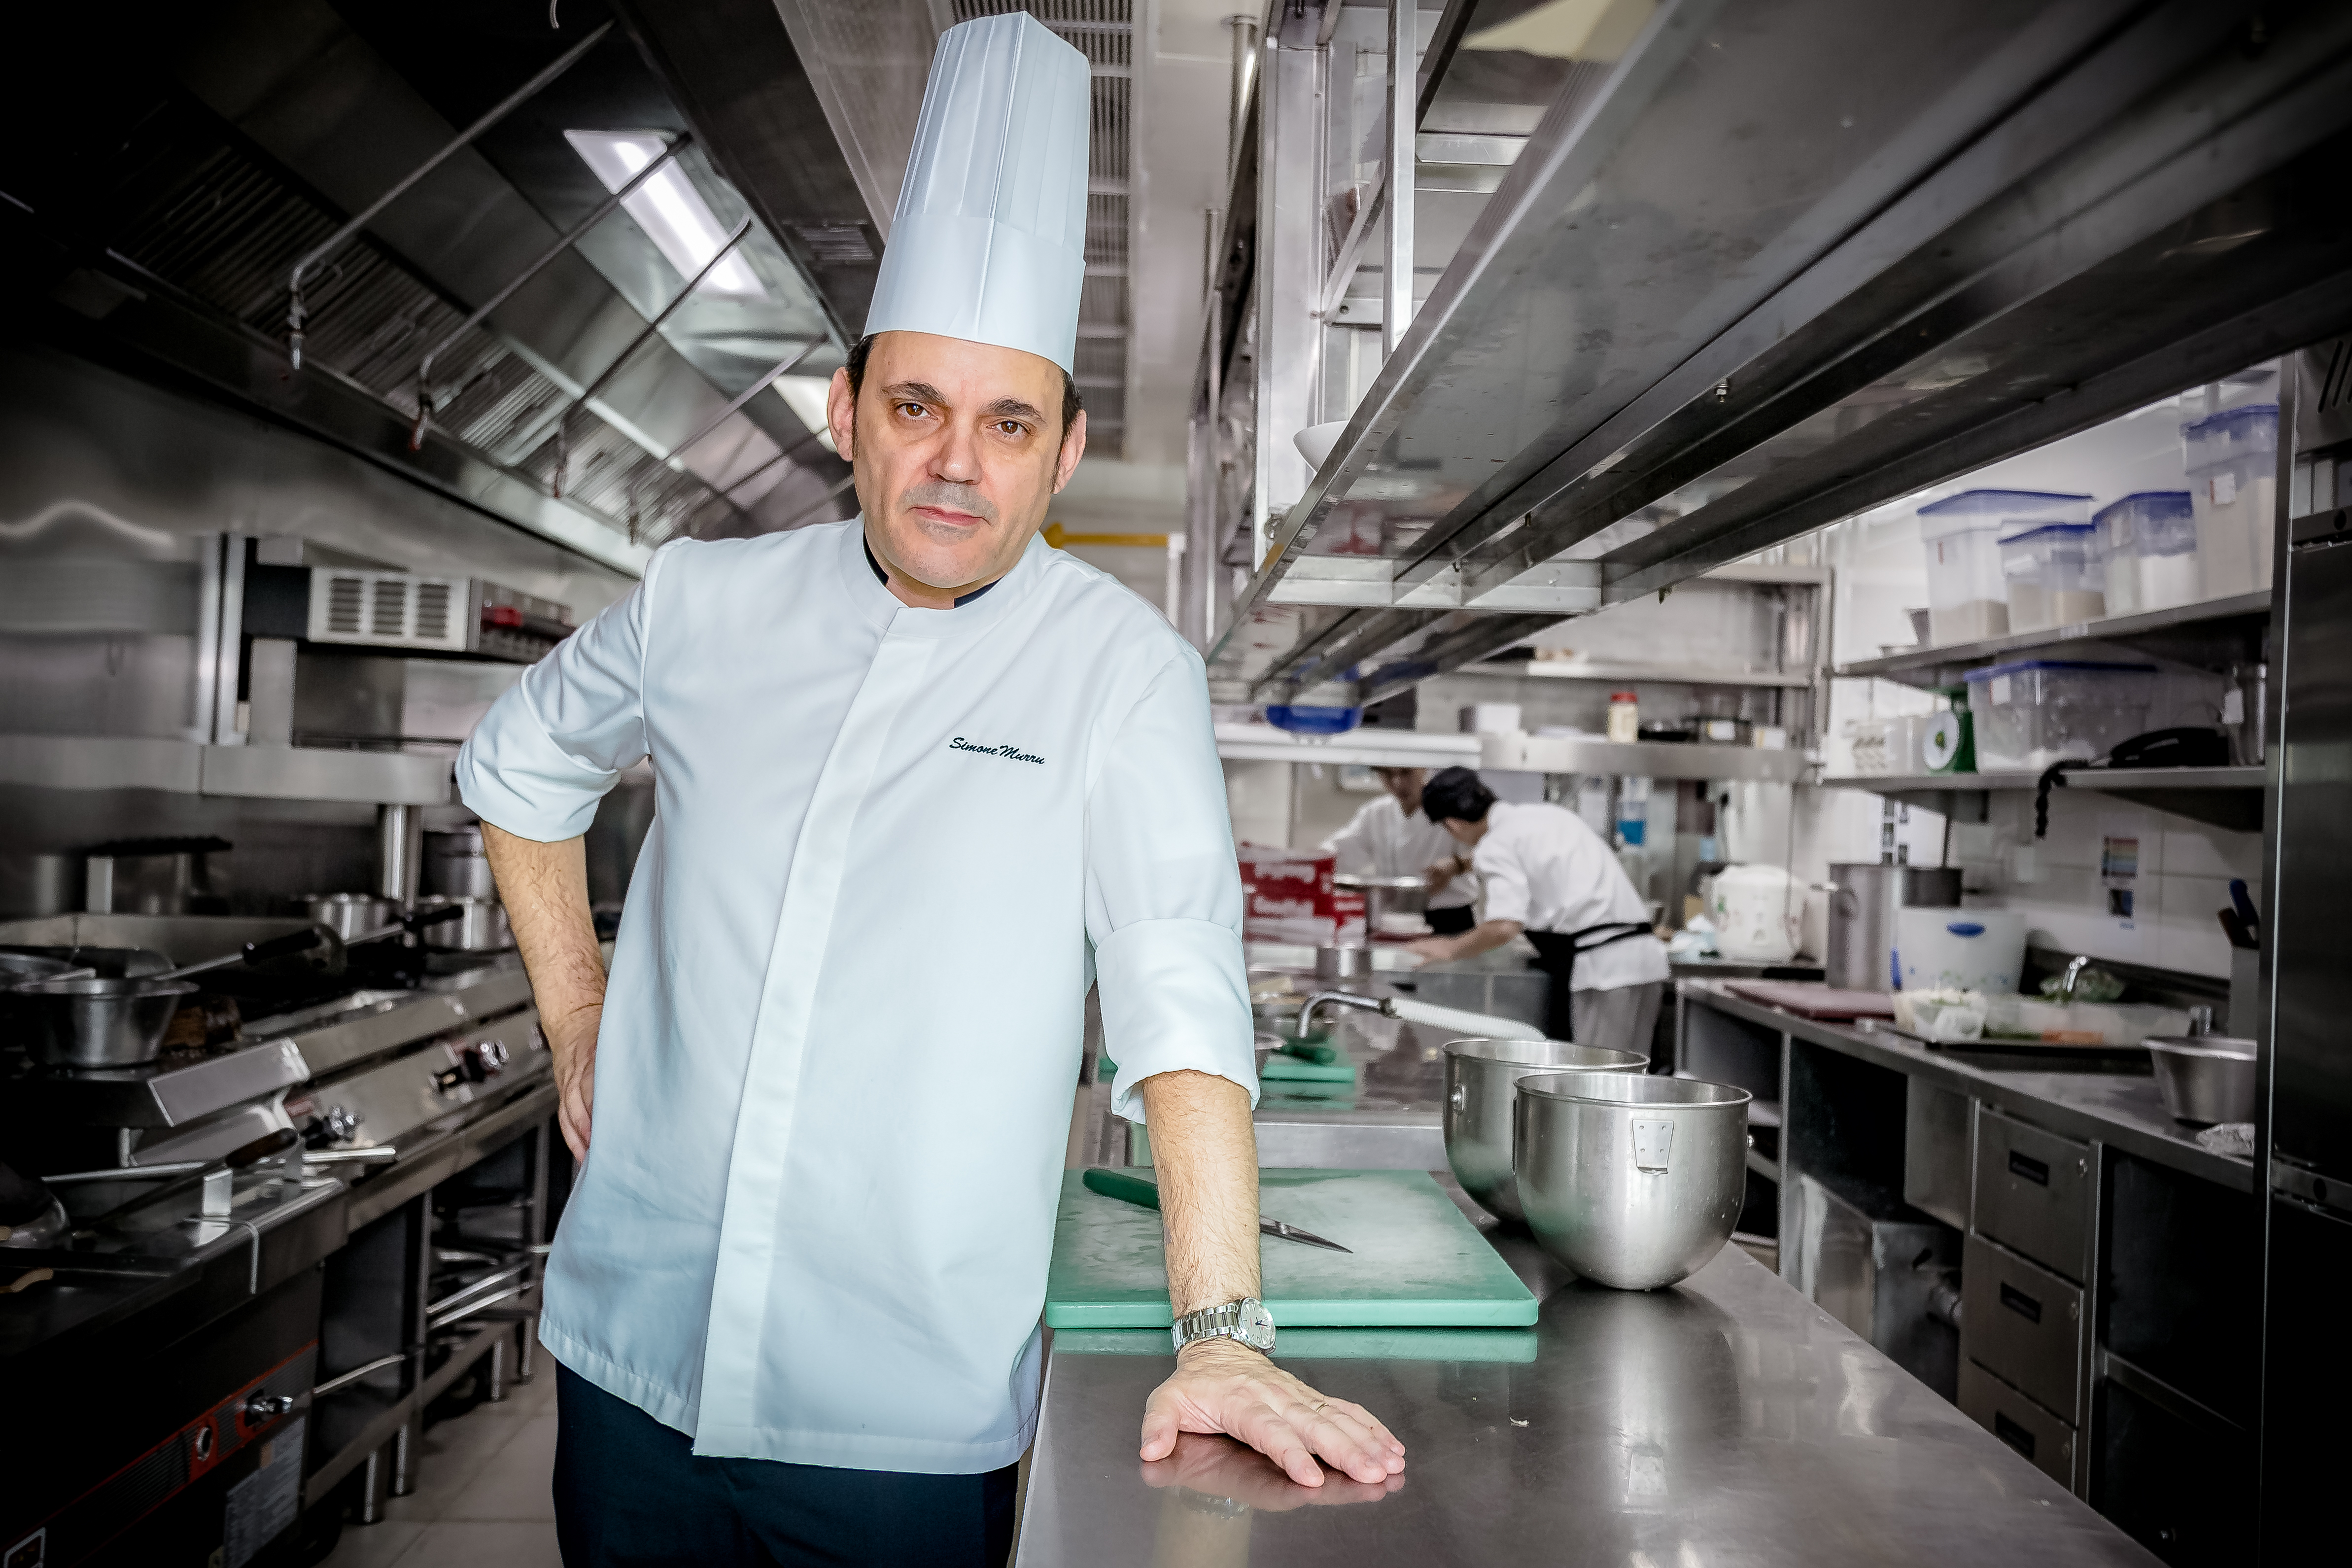 Upcoming Culinary Discovery At Le Meridien Saigon With The Appointment Of New Executive Chef